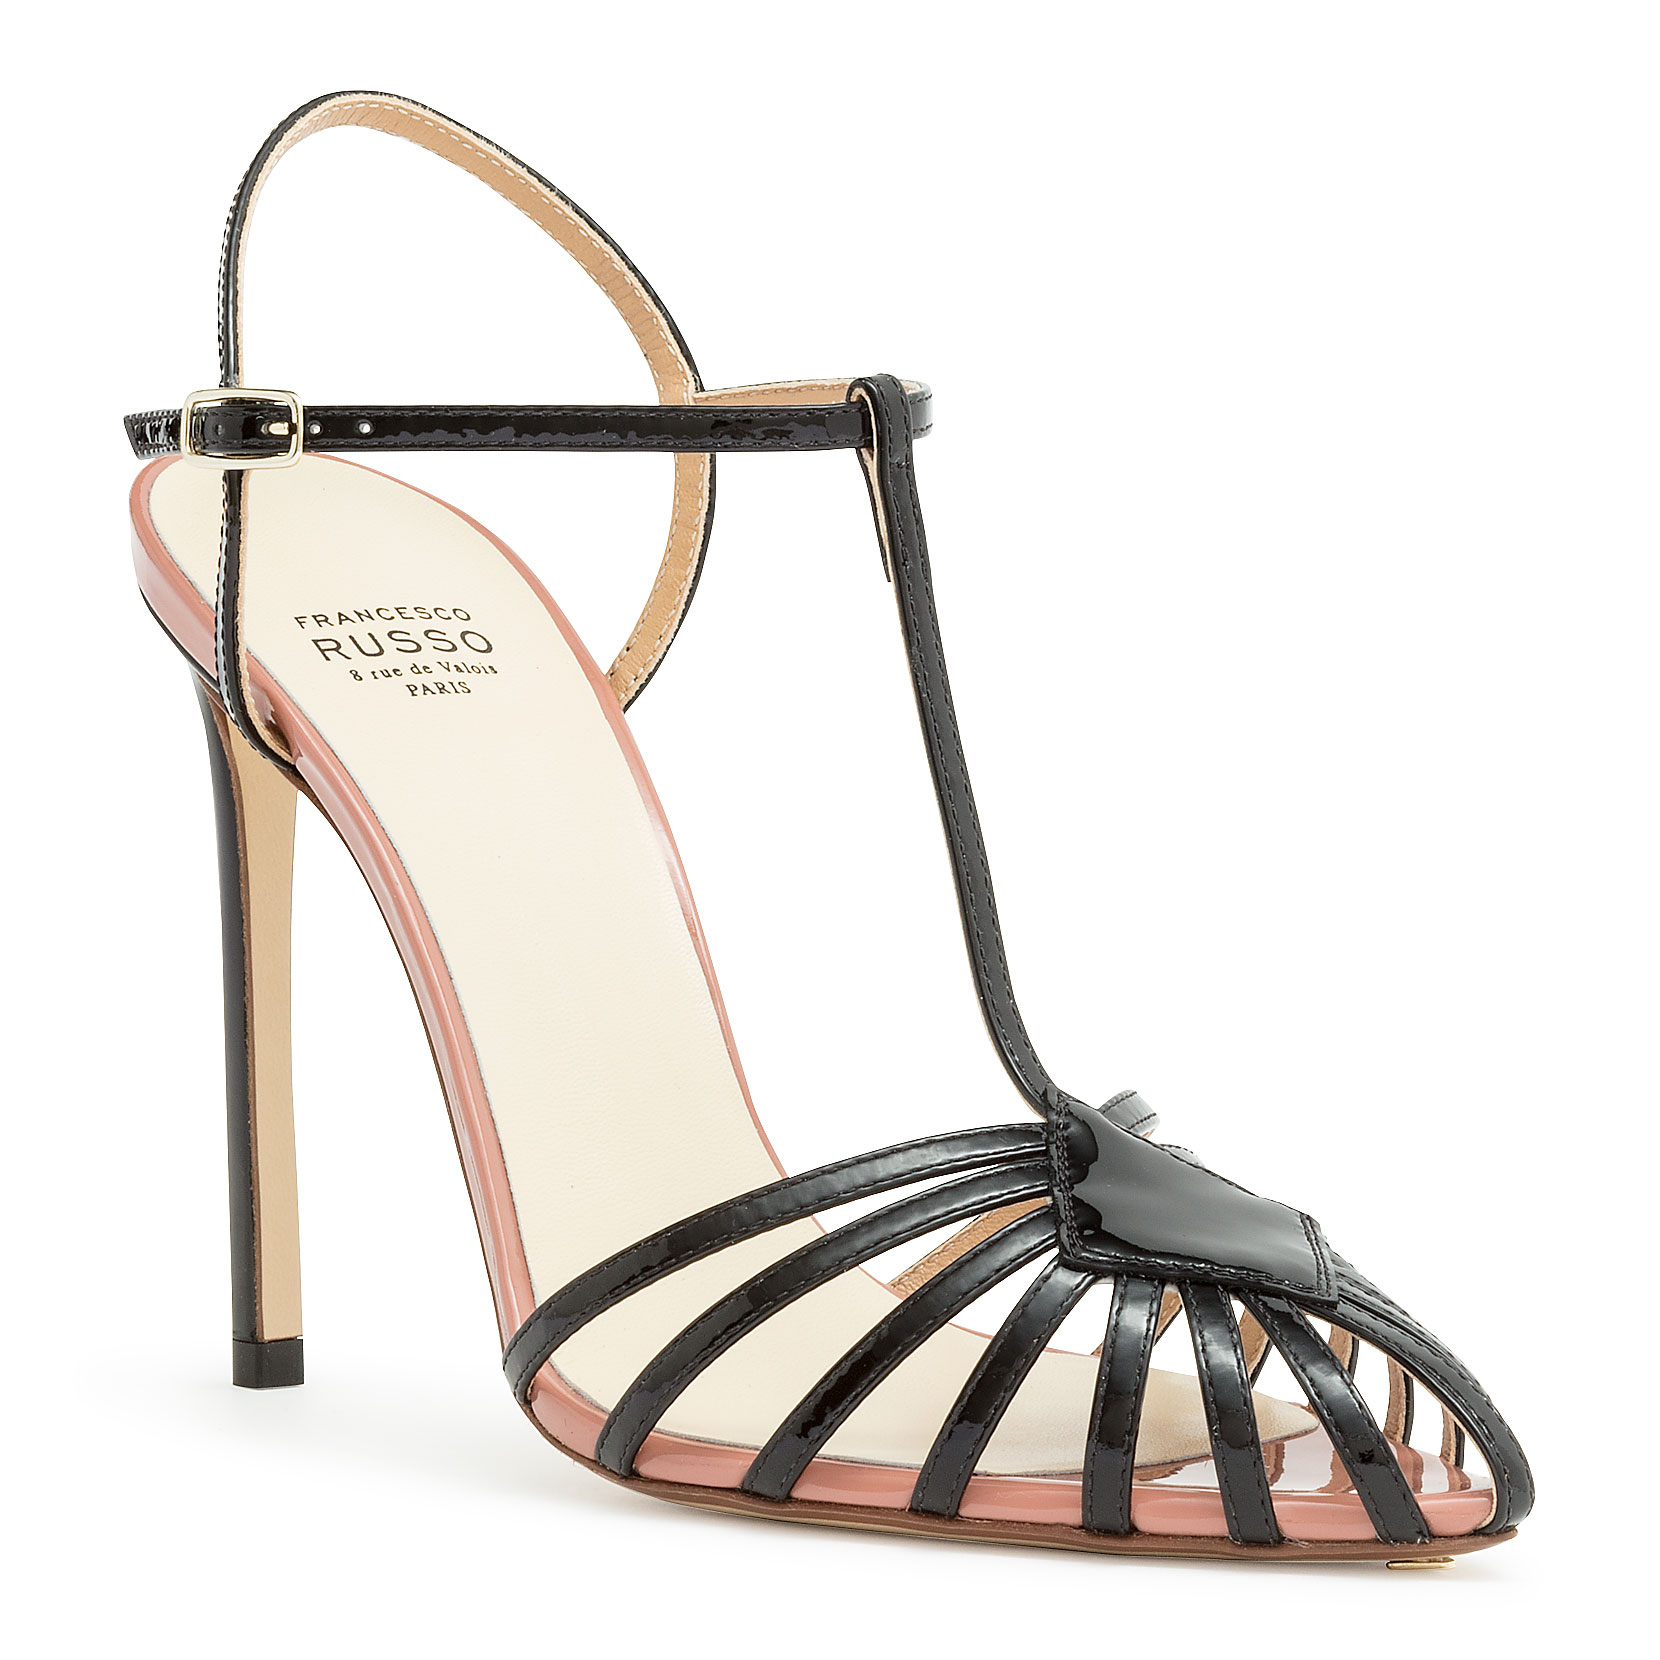 6f2963b20f2 Black Patent T-Bar Sandal in Black/Pink